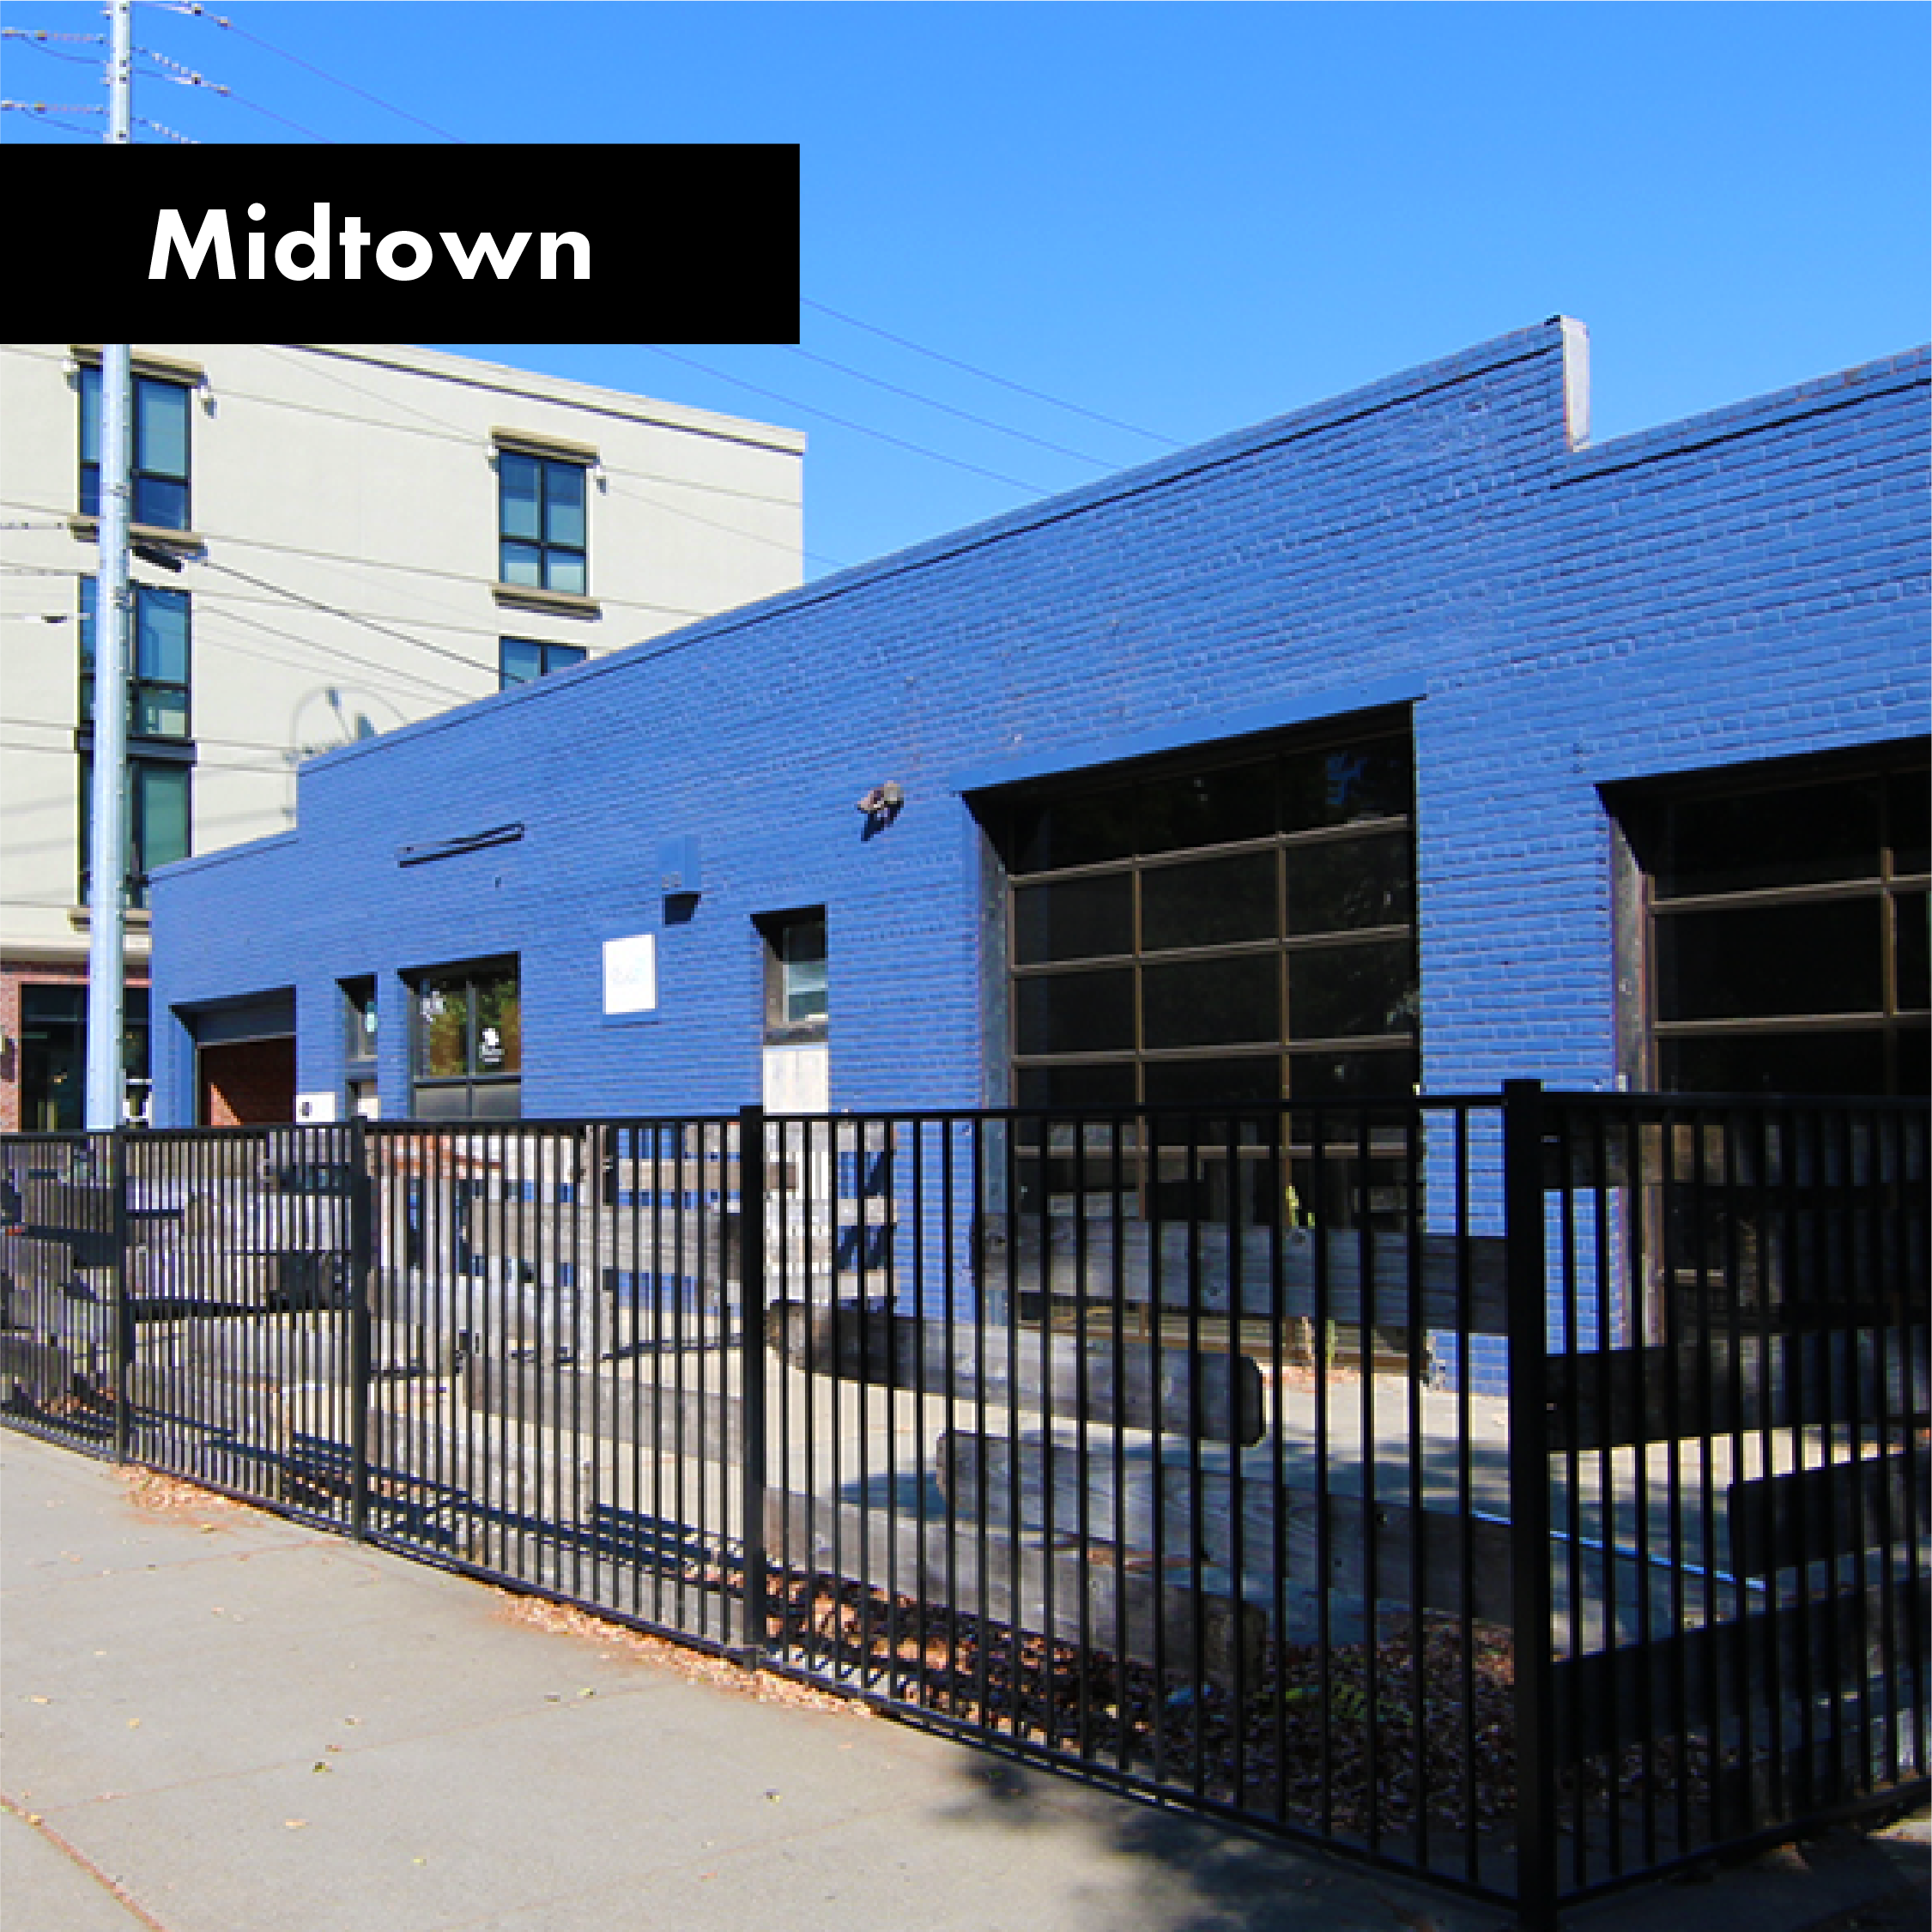 Midtown_Location_BCS8.23.19_sac.png